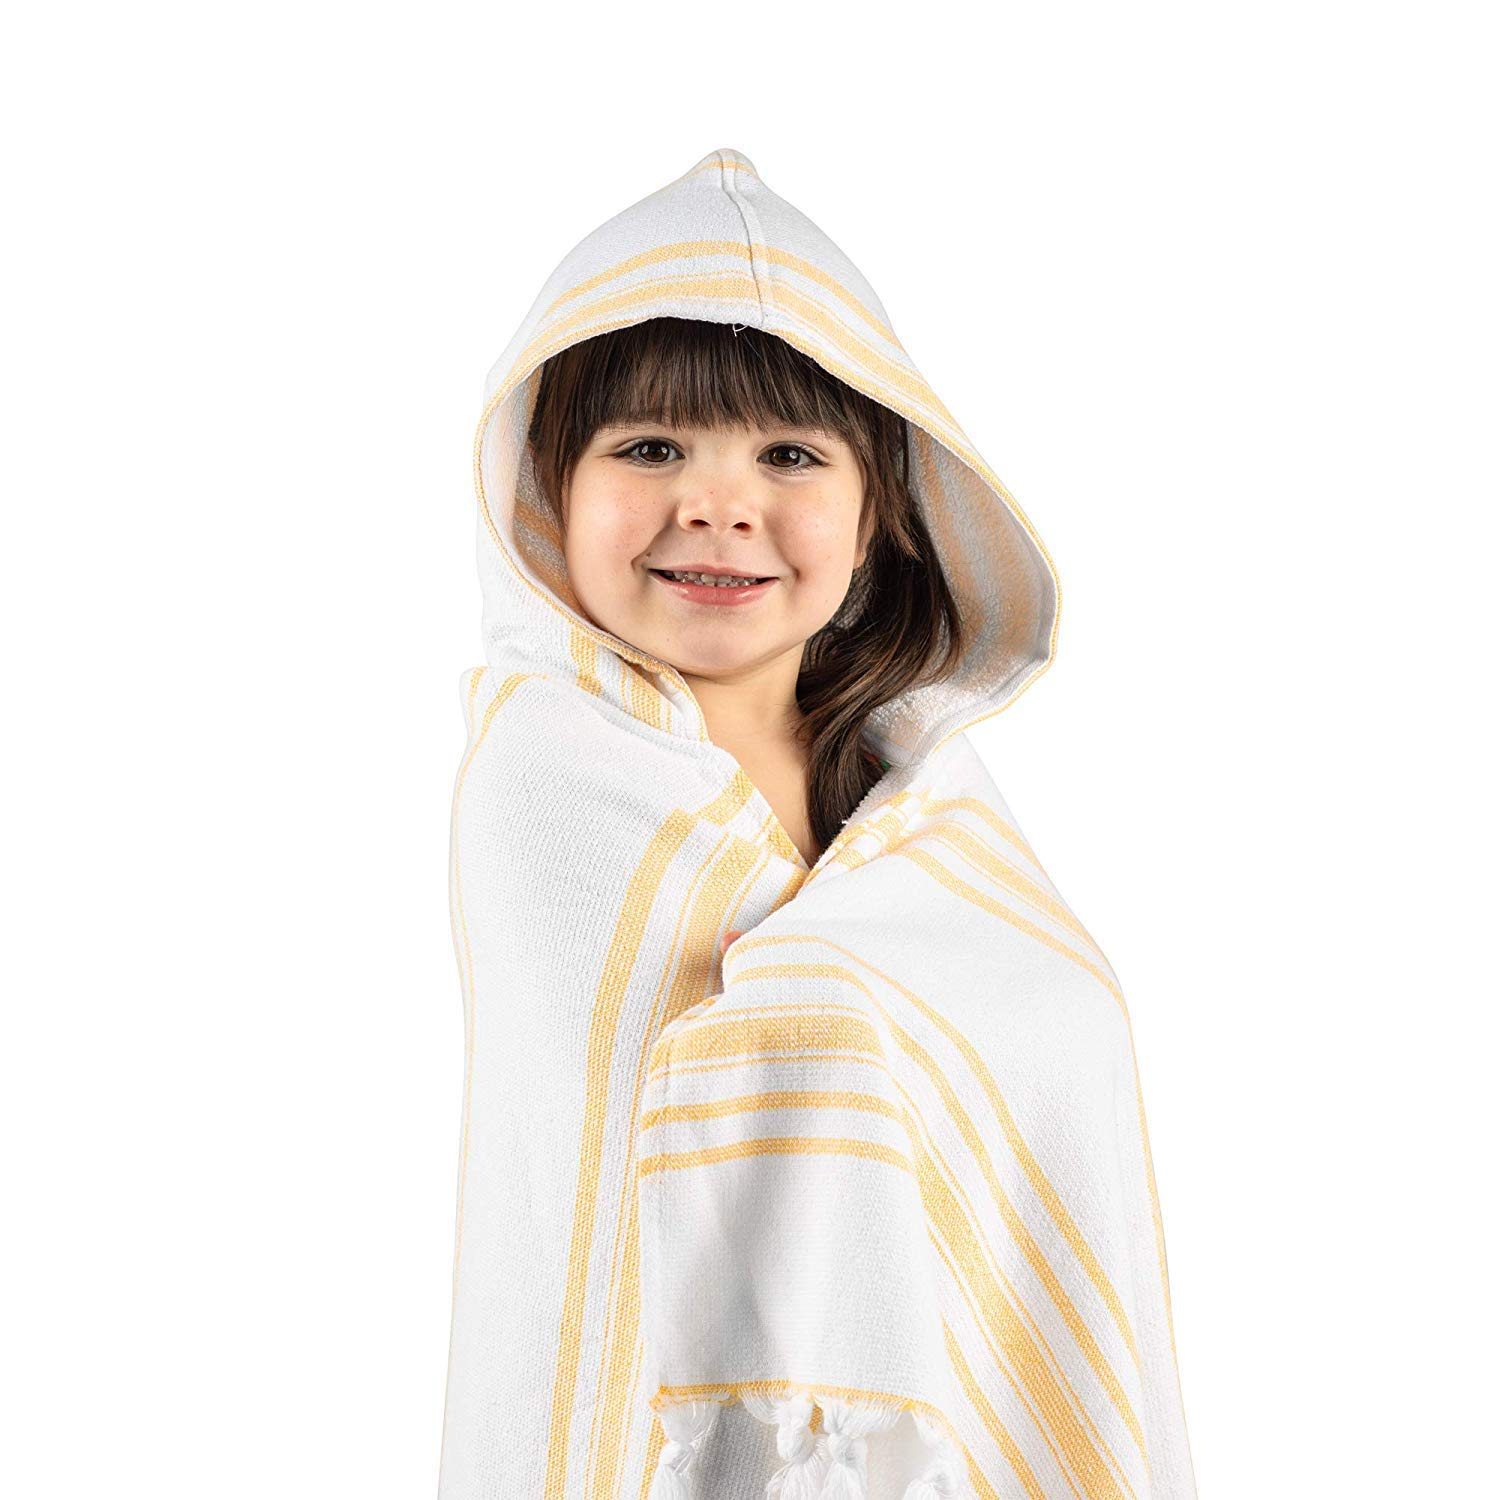 Hooded Bath Towel for Kids, Luxury Soft Hooded, Handmade in Turkey myHavlu - Yellow by Havlu